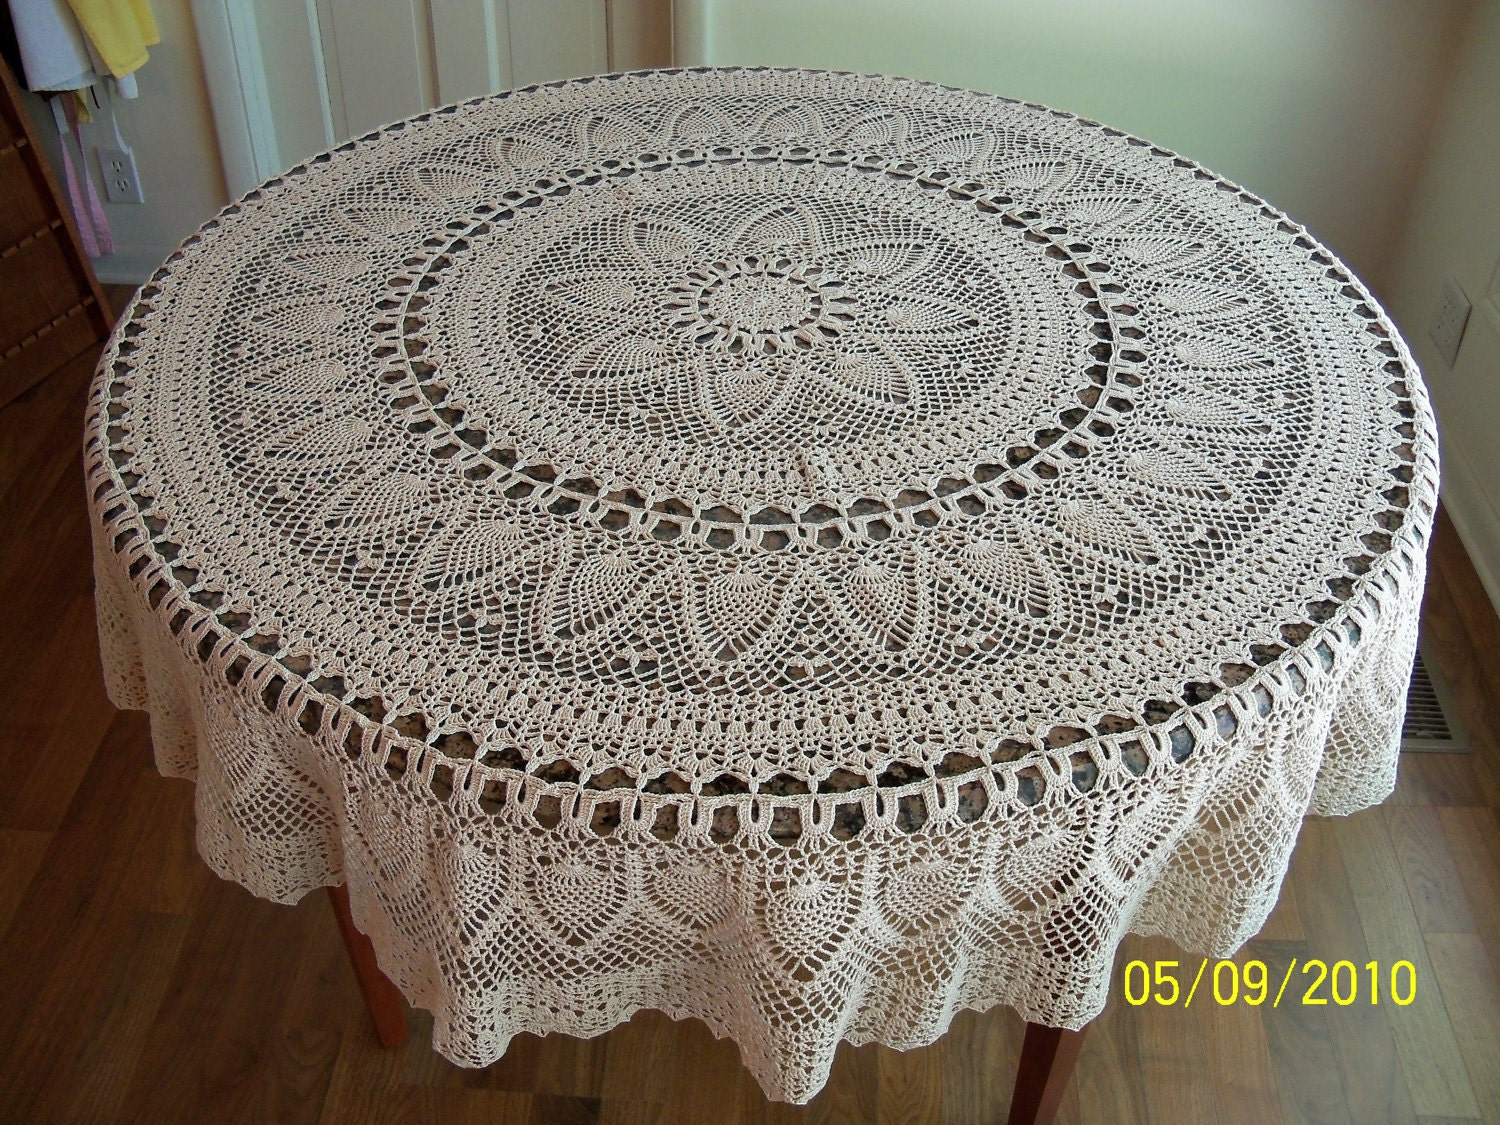 Crochet Tablecloth : Handmade Crocheted Pineapple Tablecloth 70 inch Round by jenearly1